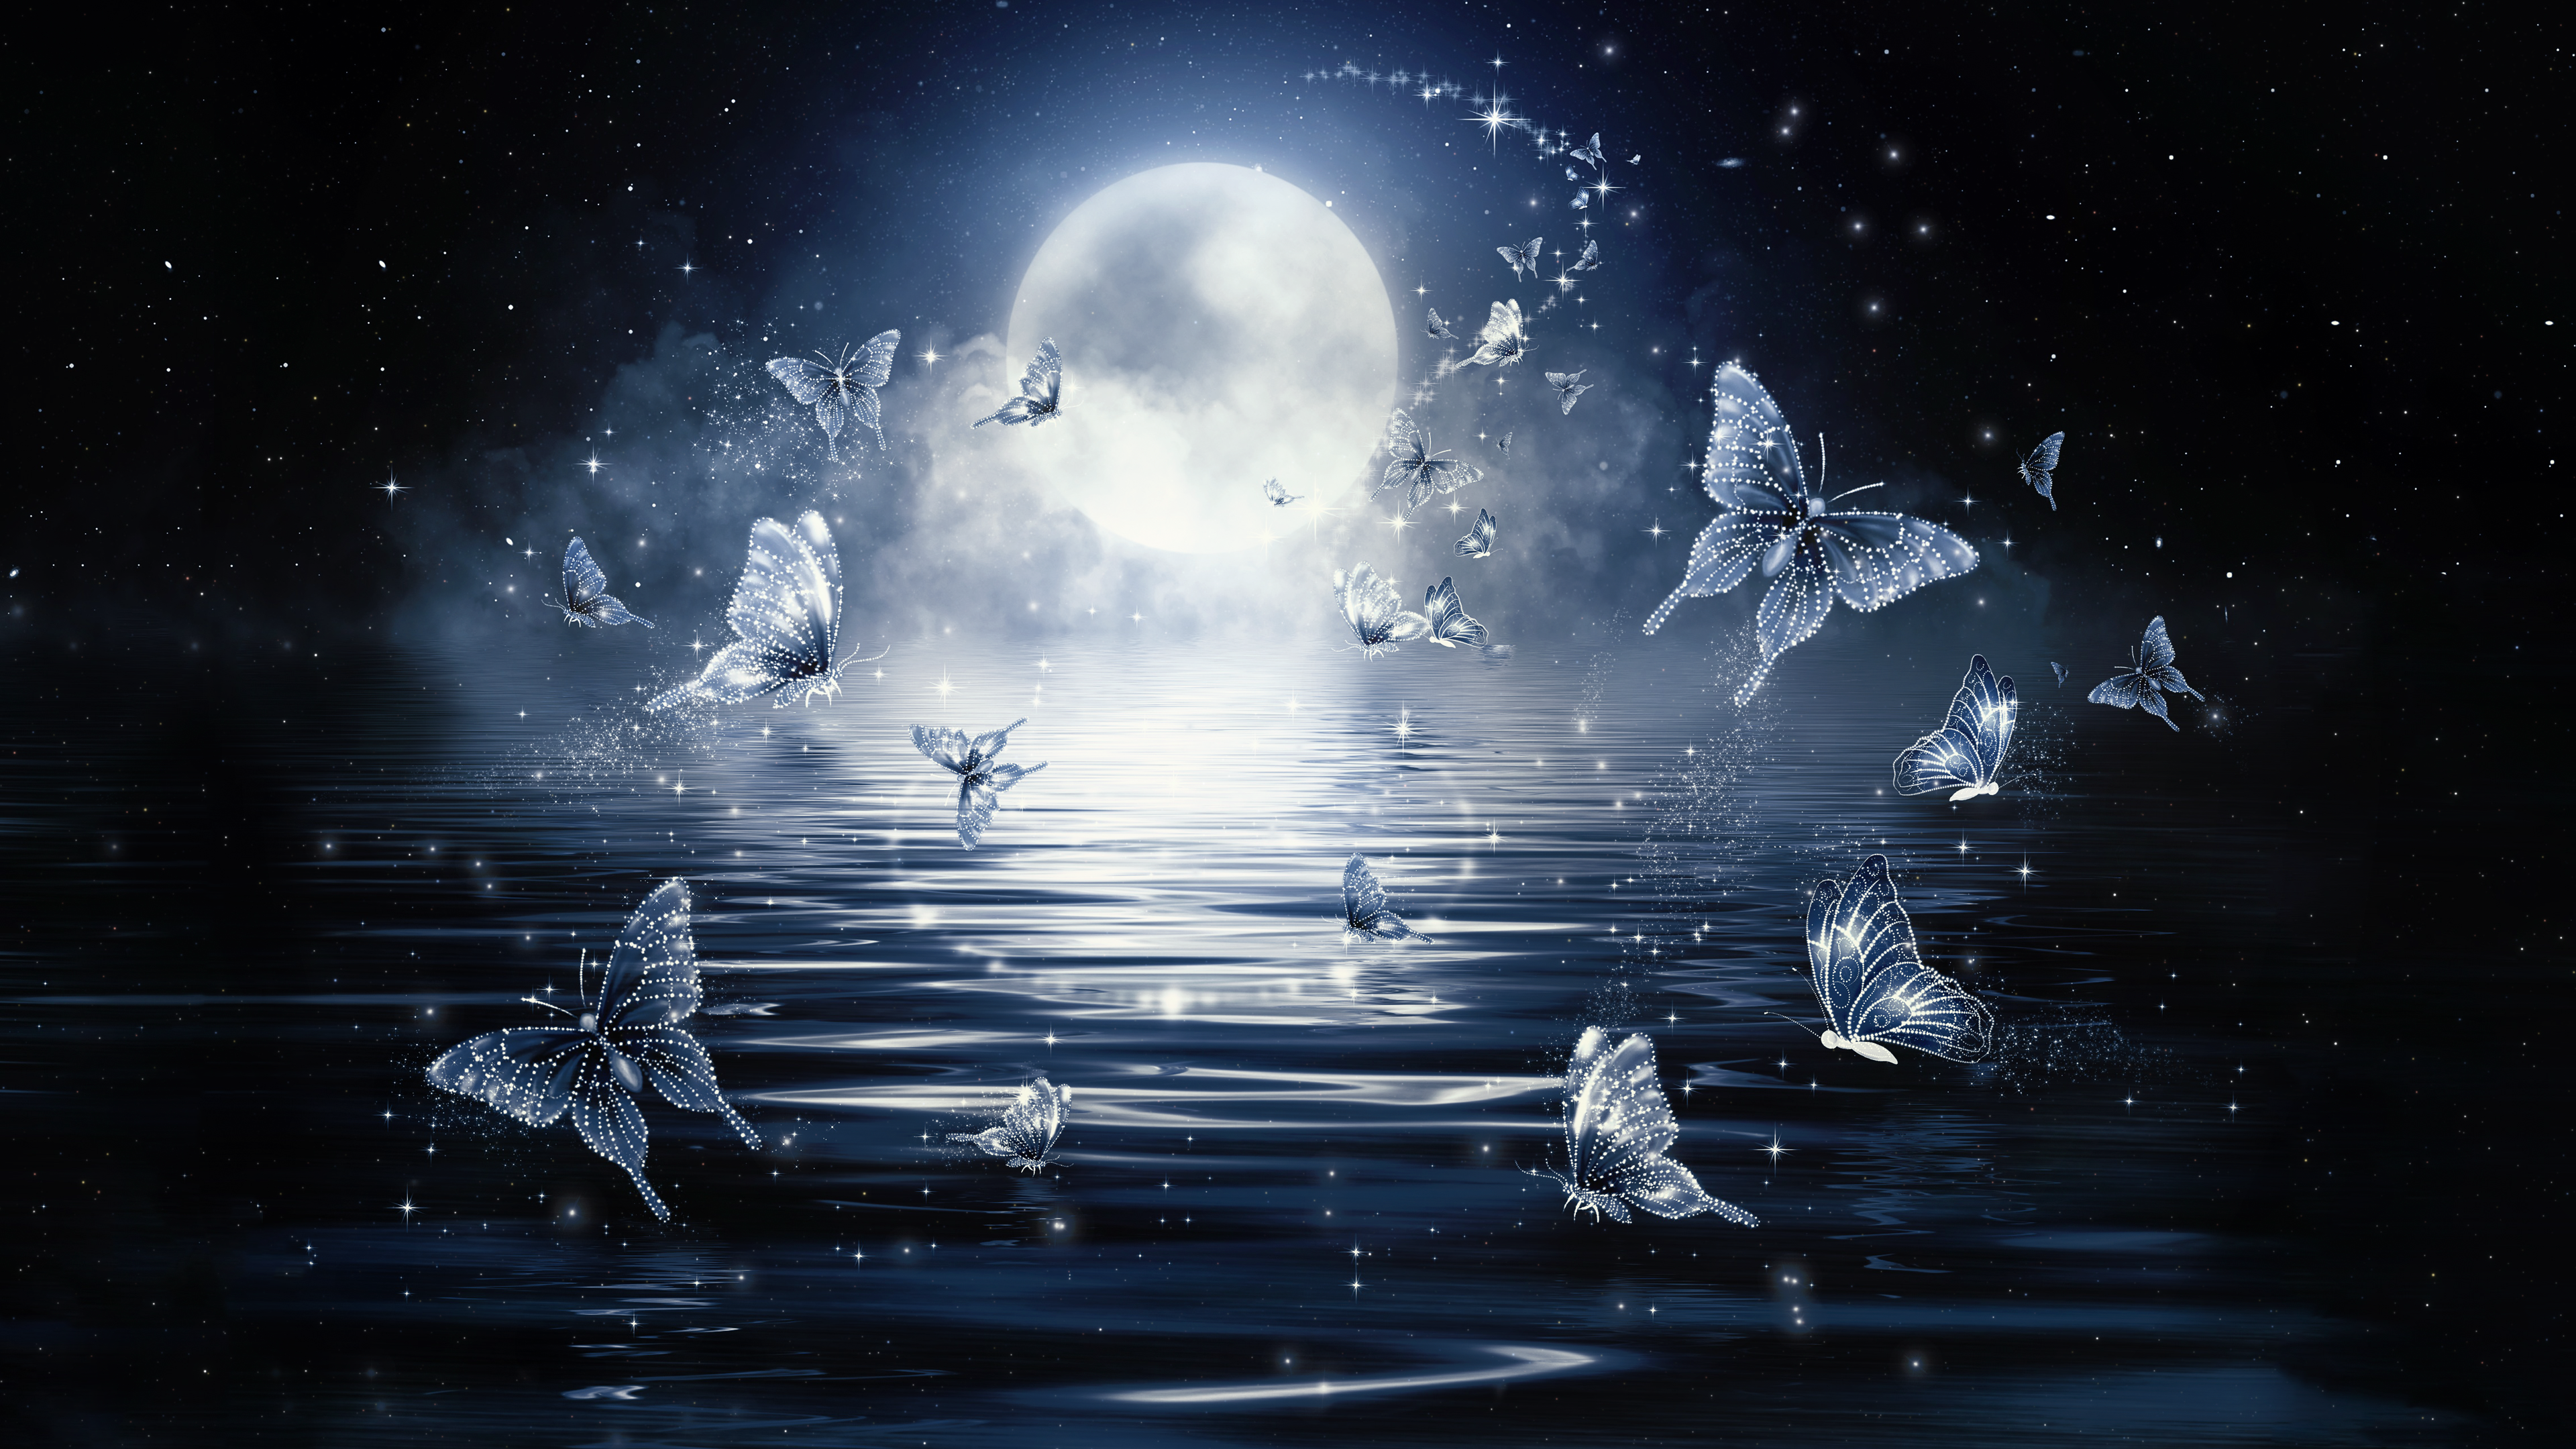 Moon Butterflies 4K Wallpaper Download